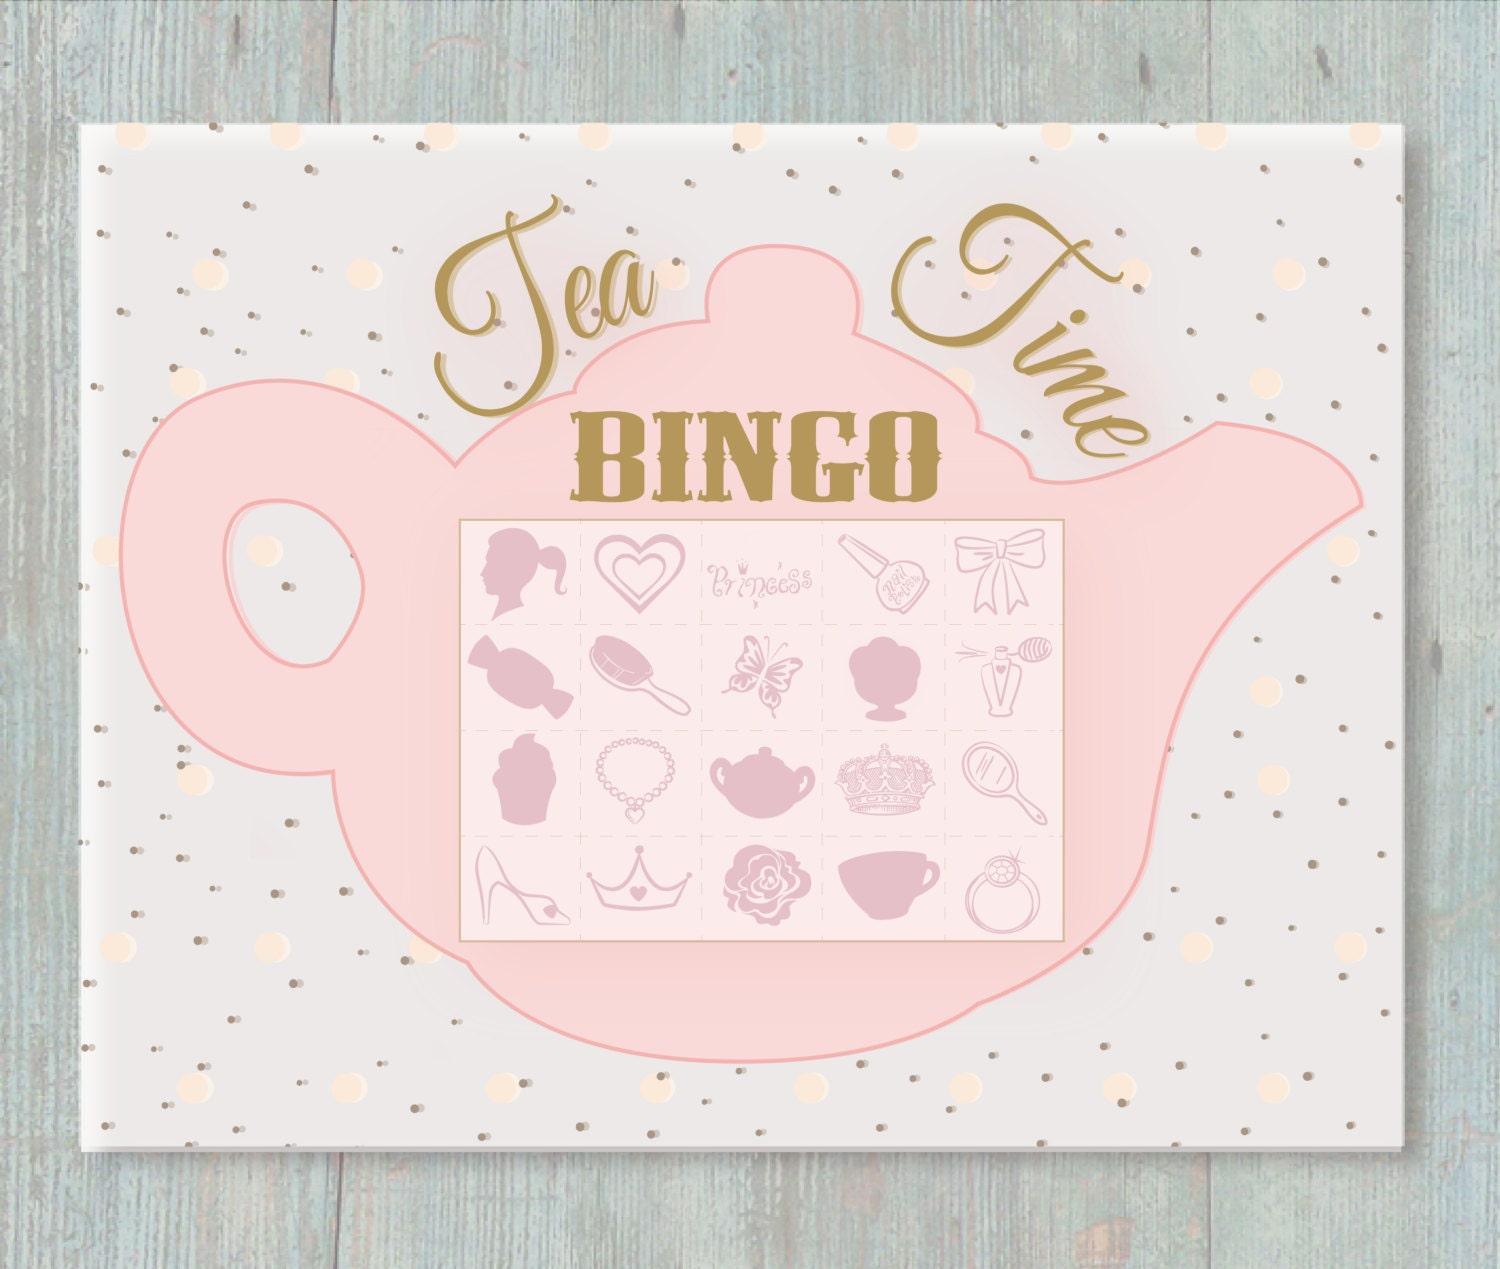 Witty image with regard to free printable tea party games